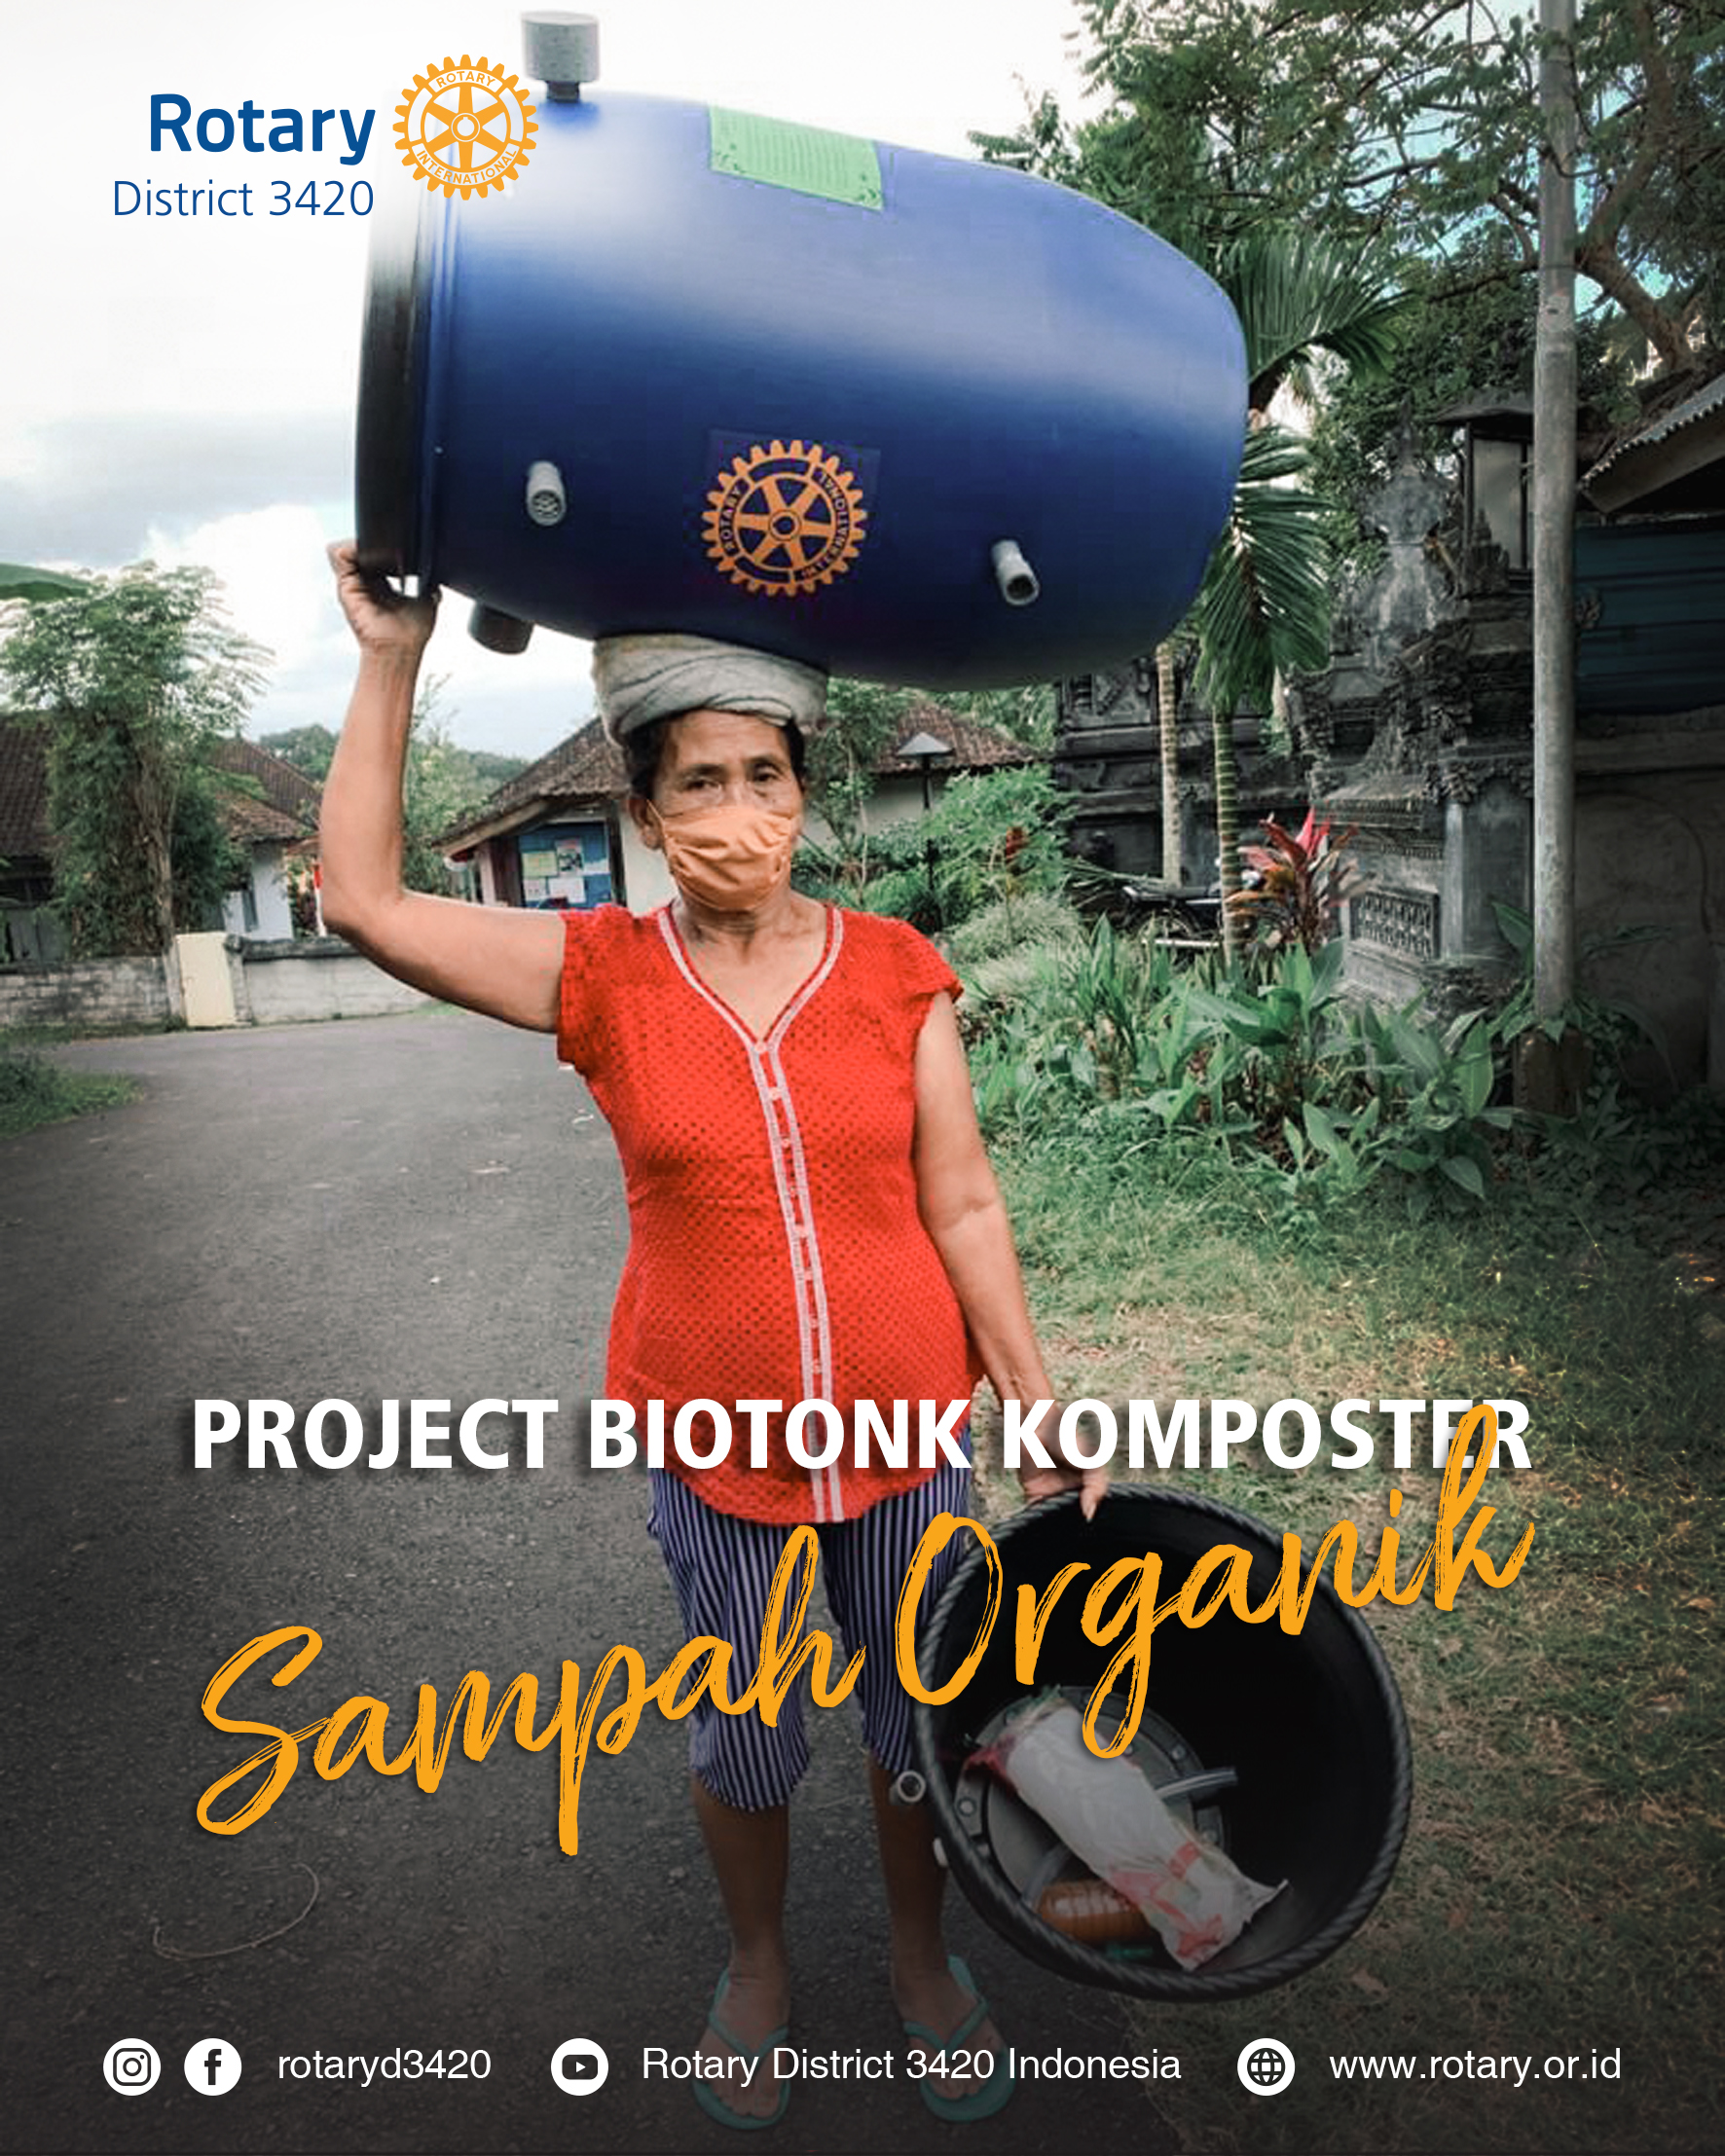 Biotonk Komposter Organik (District Grant# 2091015)